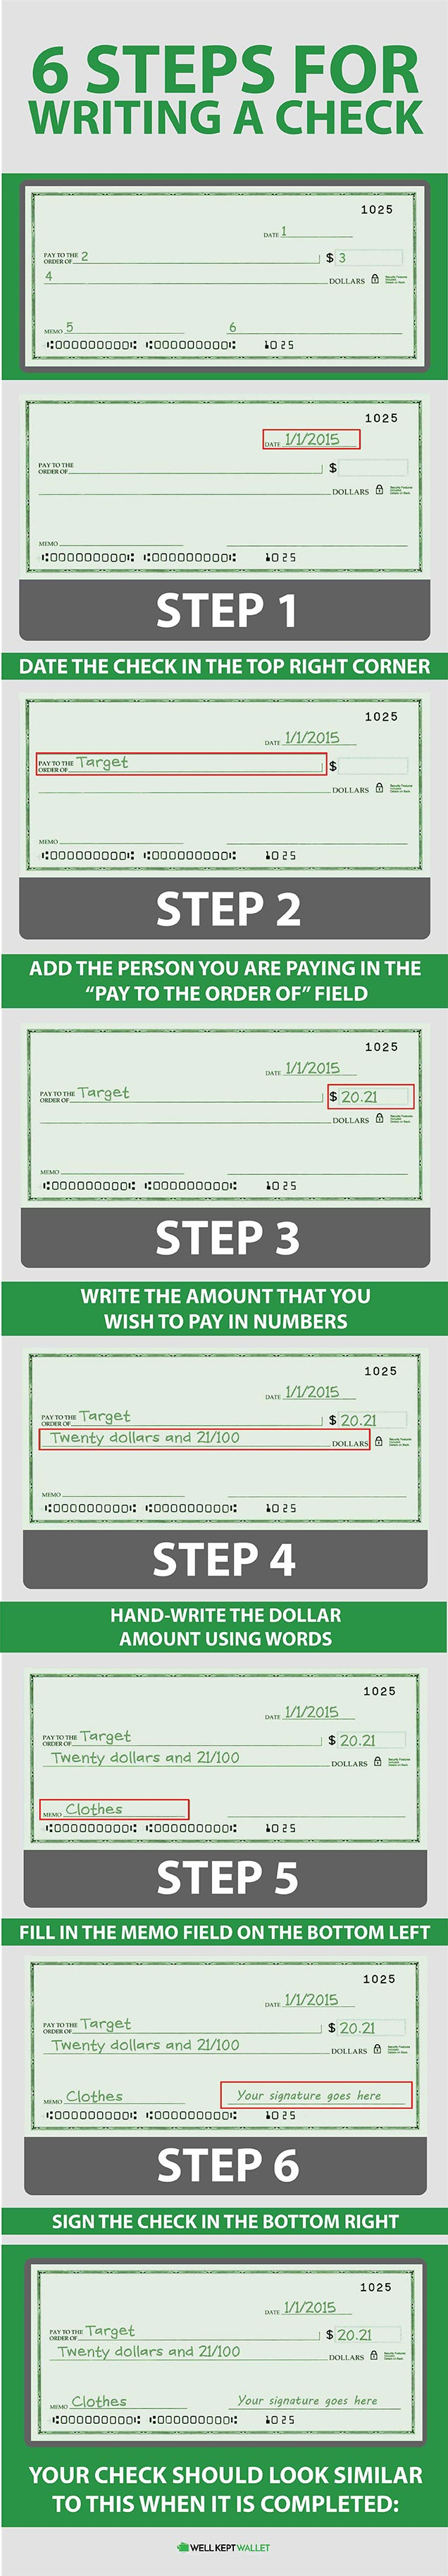 How to Write A Check in 6 Easy Steps